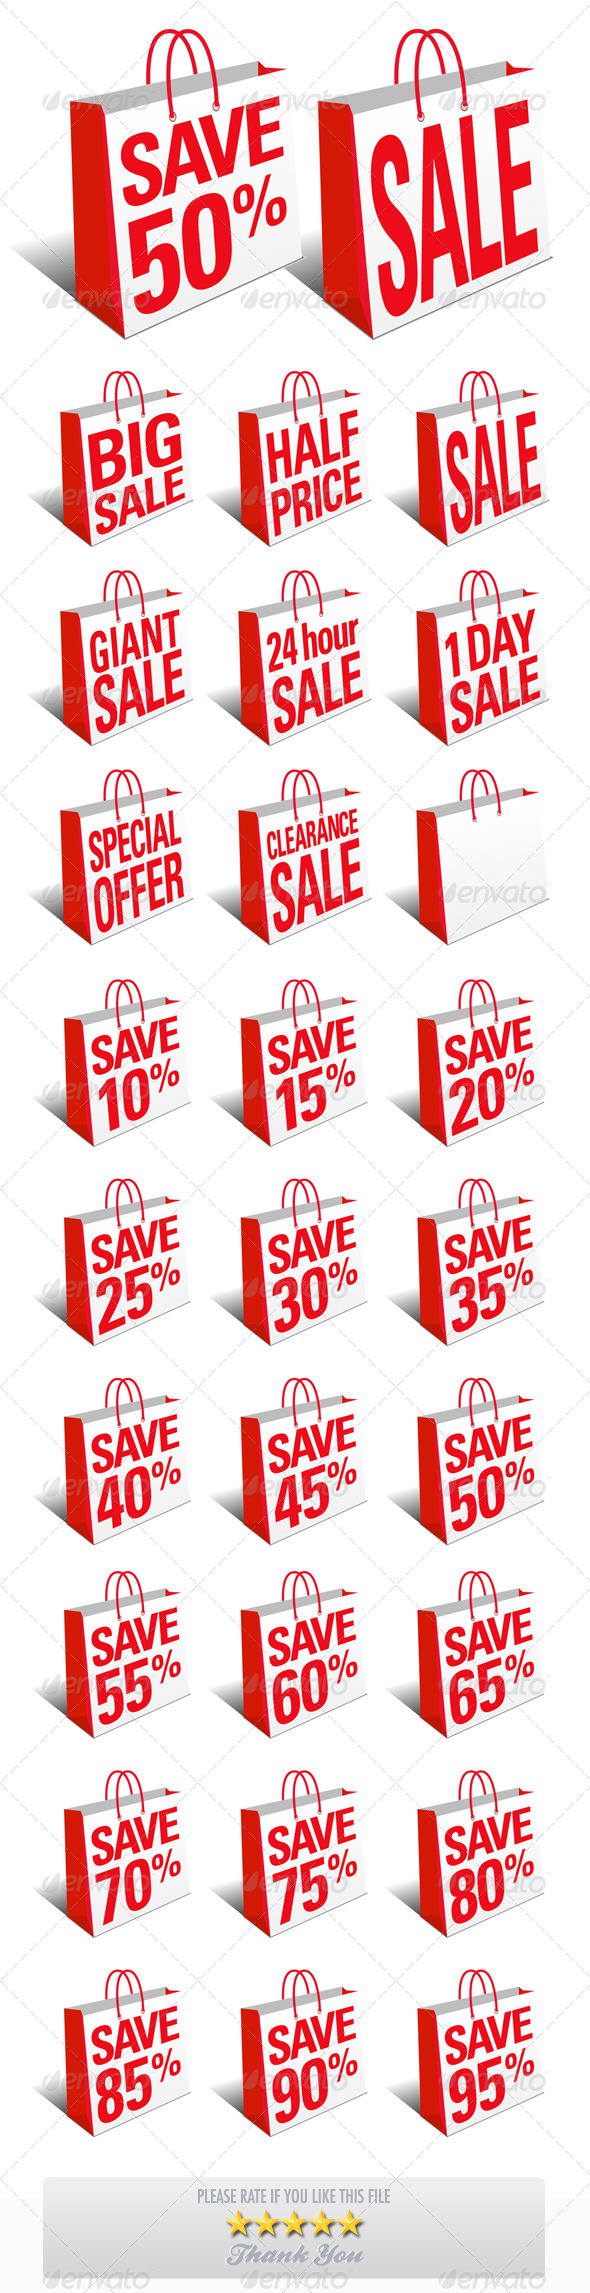 Sale and Save Shopping Bags - Commercial / Shopping Conceptual